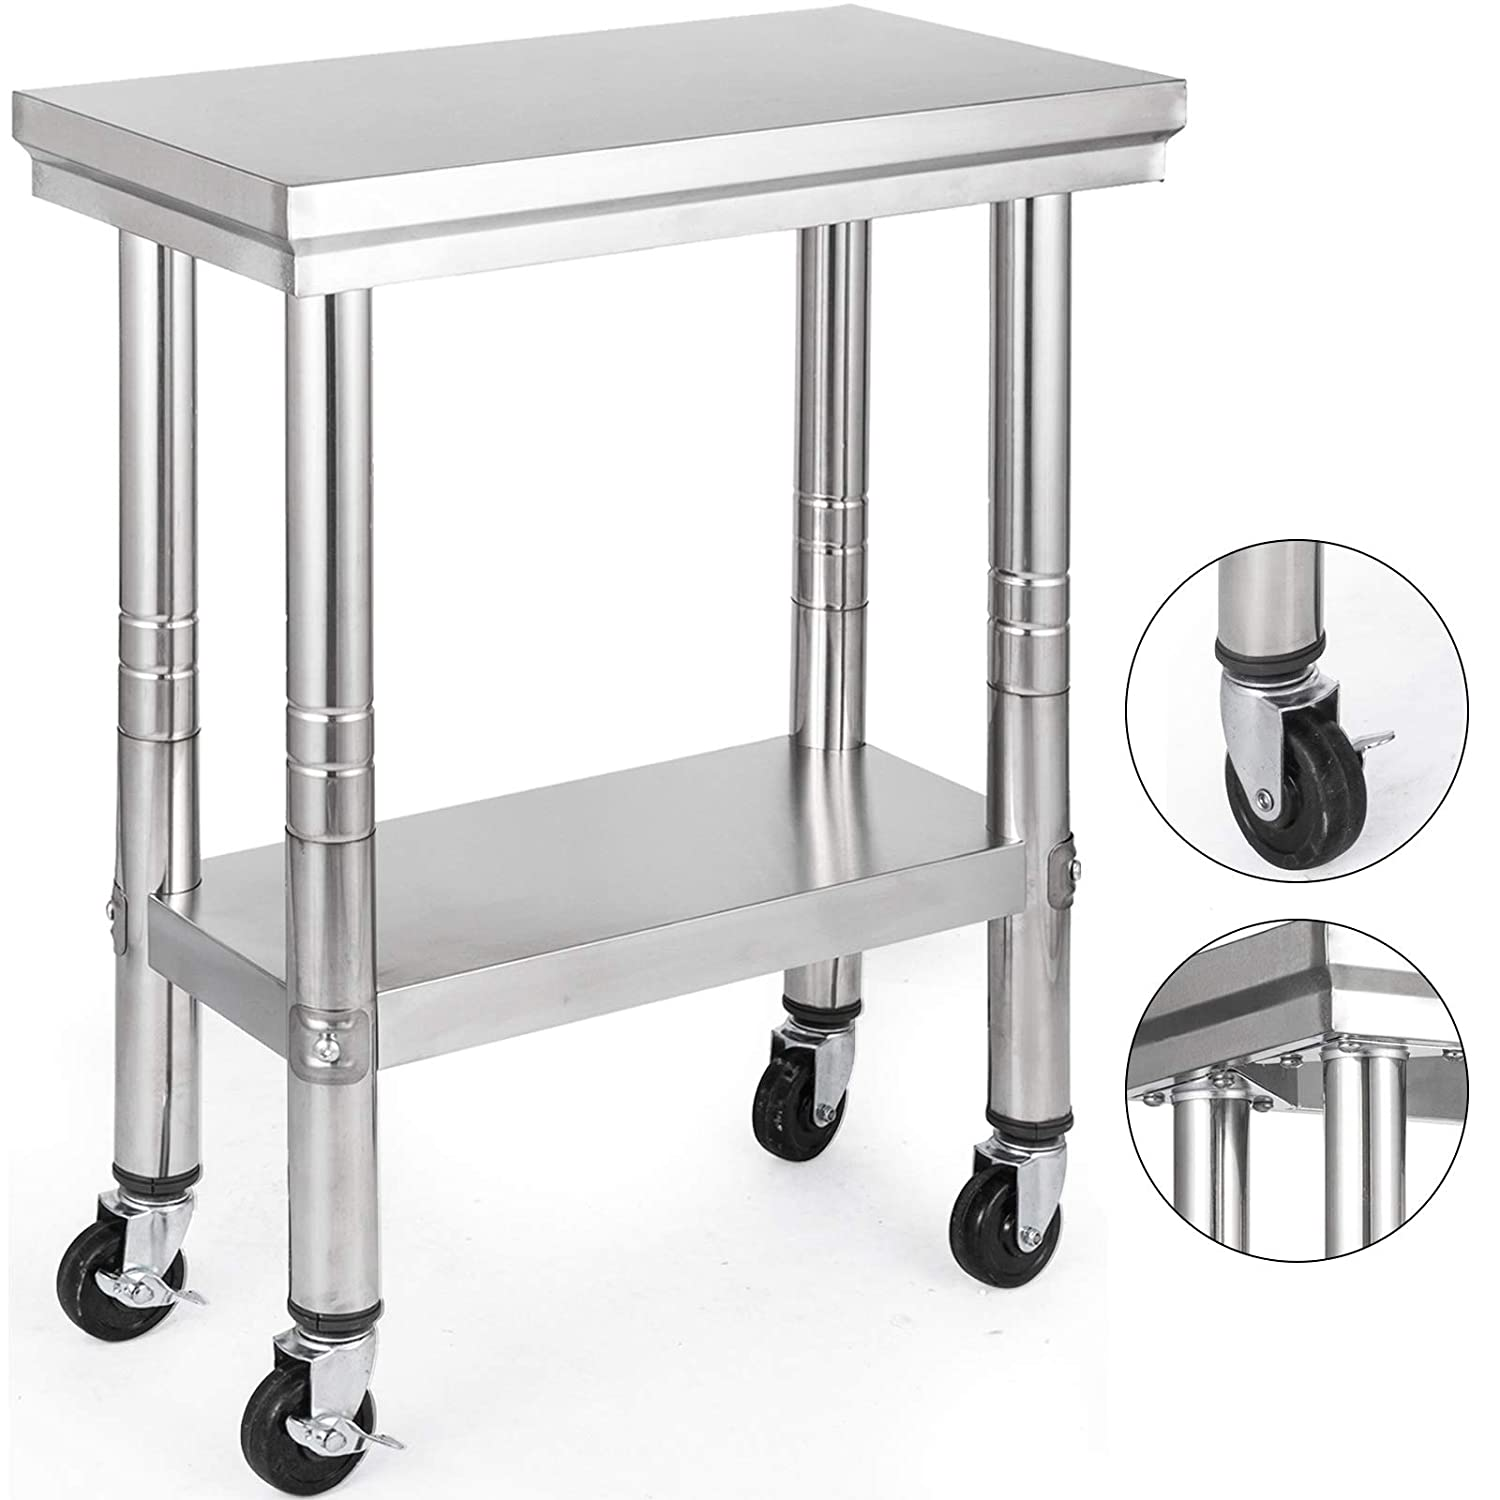 Mophorn Stainless Steel Work Table 24x12 Inch with 4 Wheels Commercial Food Prep Worktable with Casters